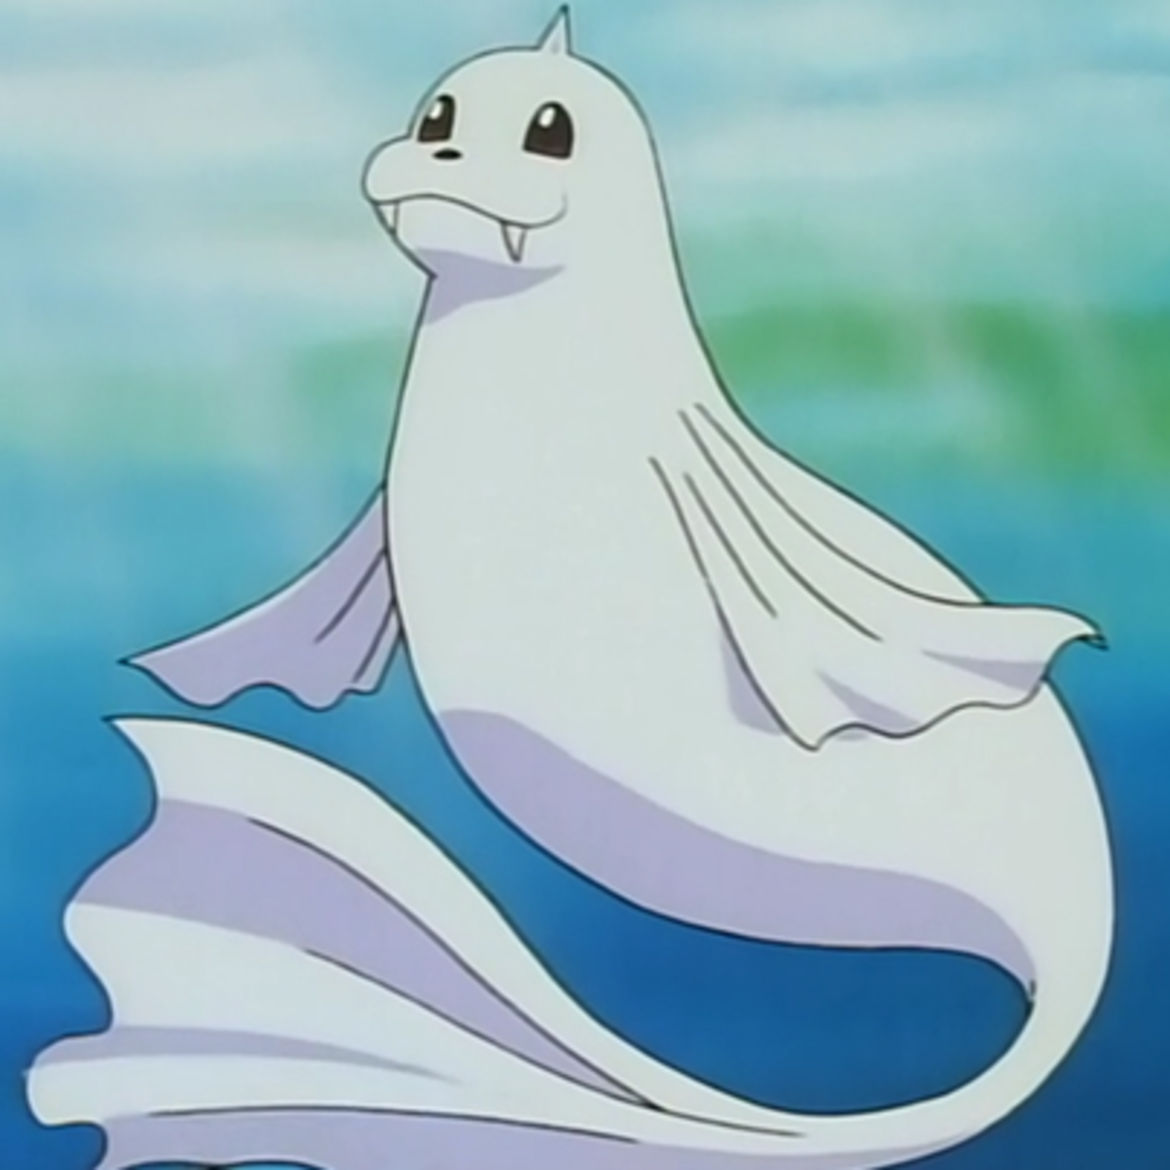 Cover Photo: A Dewgong, which is far less horrifying than a dugong